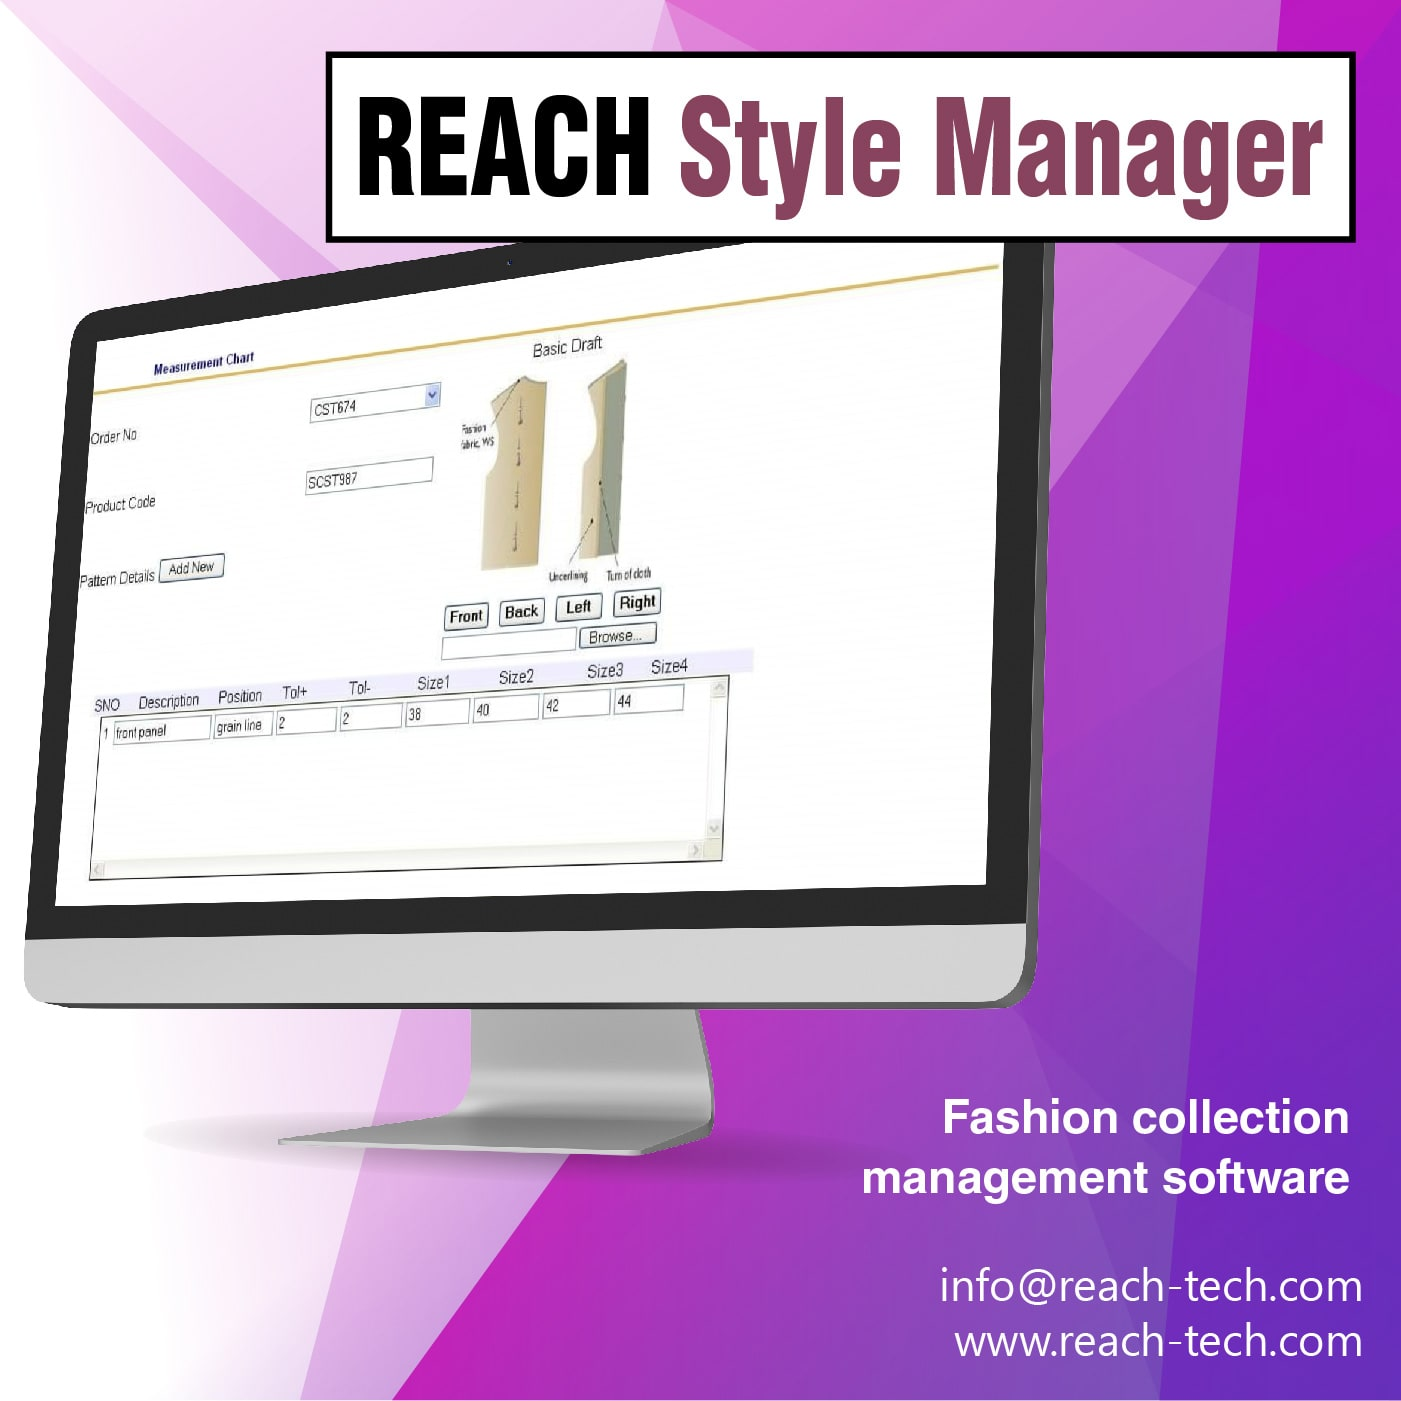 apparel-collection-management-software-4